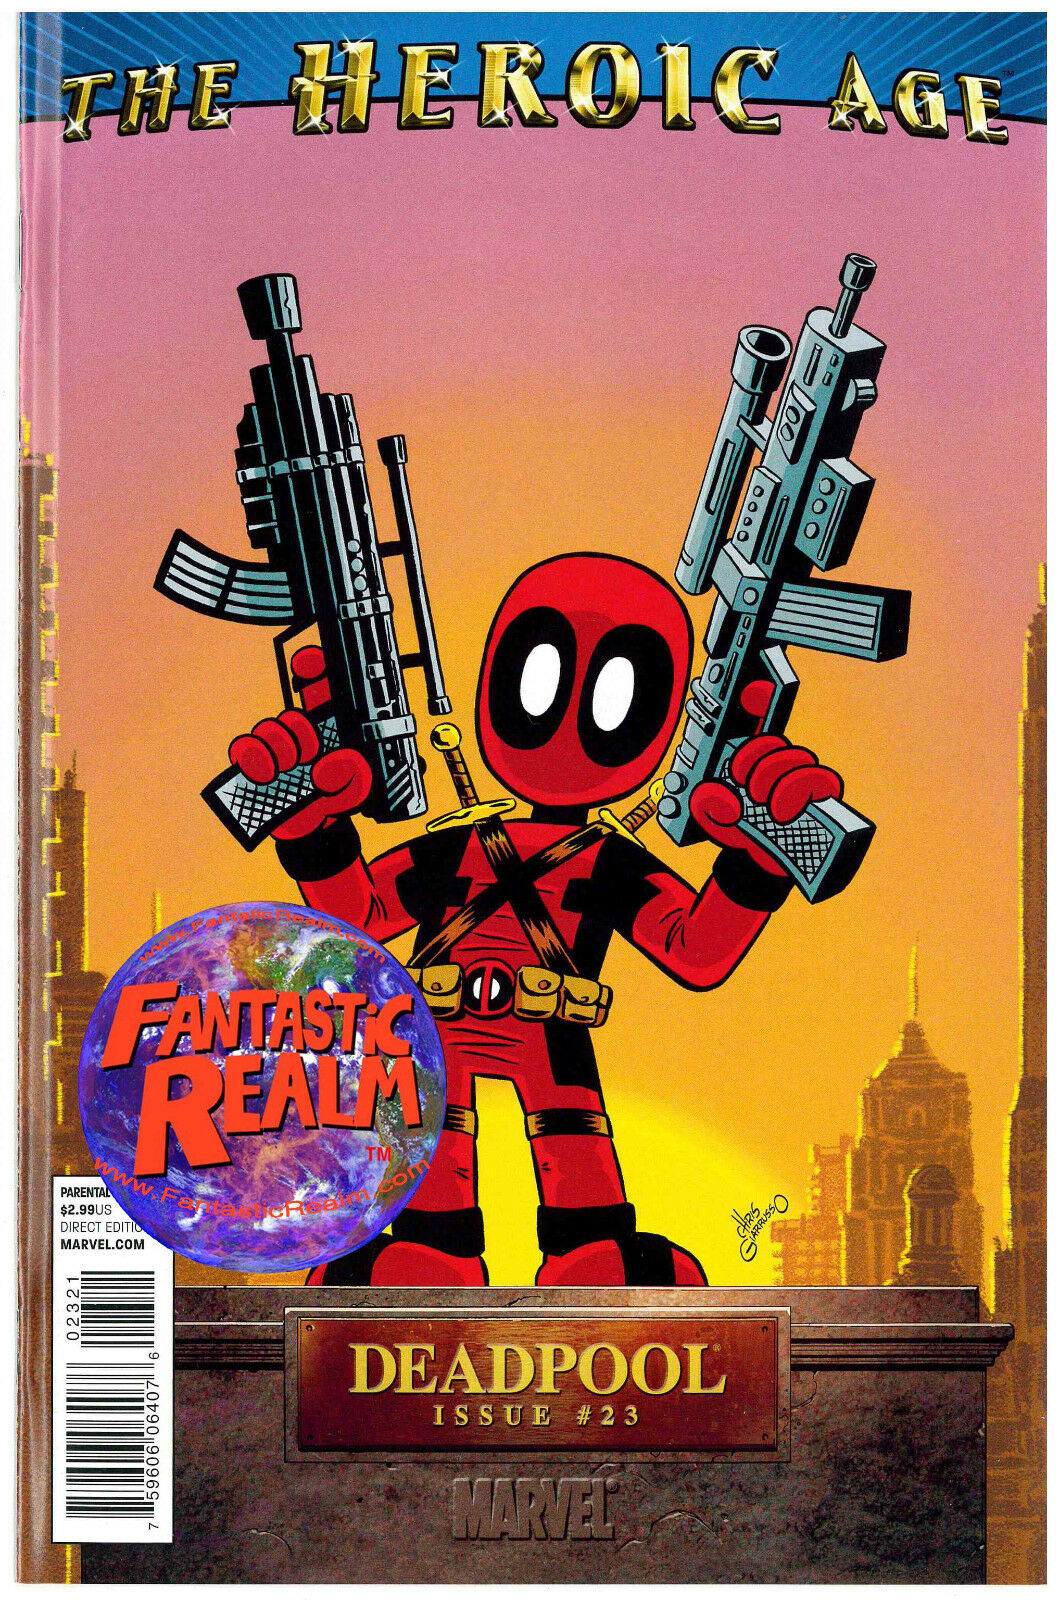 DEADPOOL #23: HEROIC AGE 1:15 CHRIS GIARUSSO VARIANT MARVEL COMICS